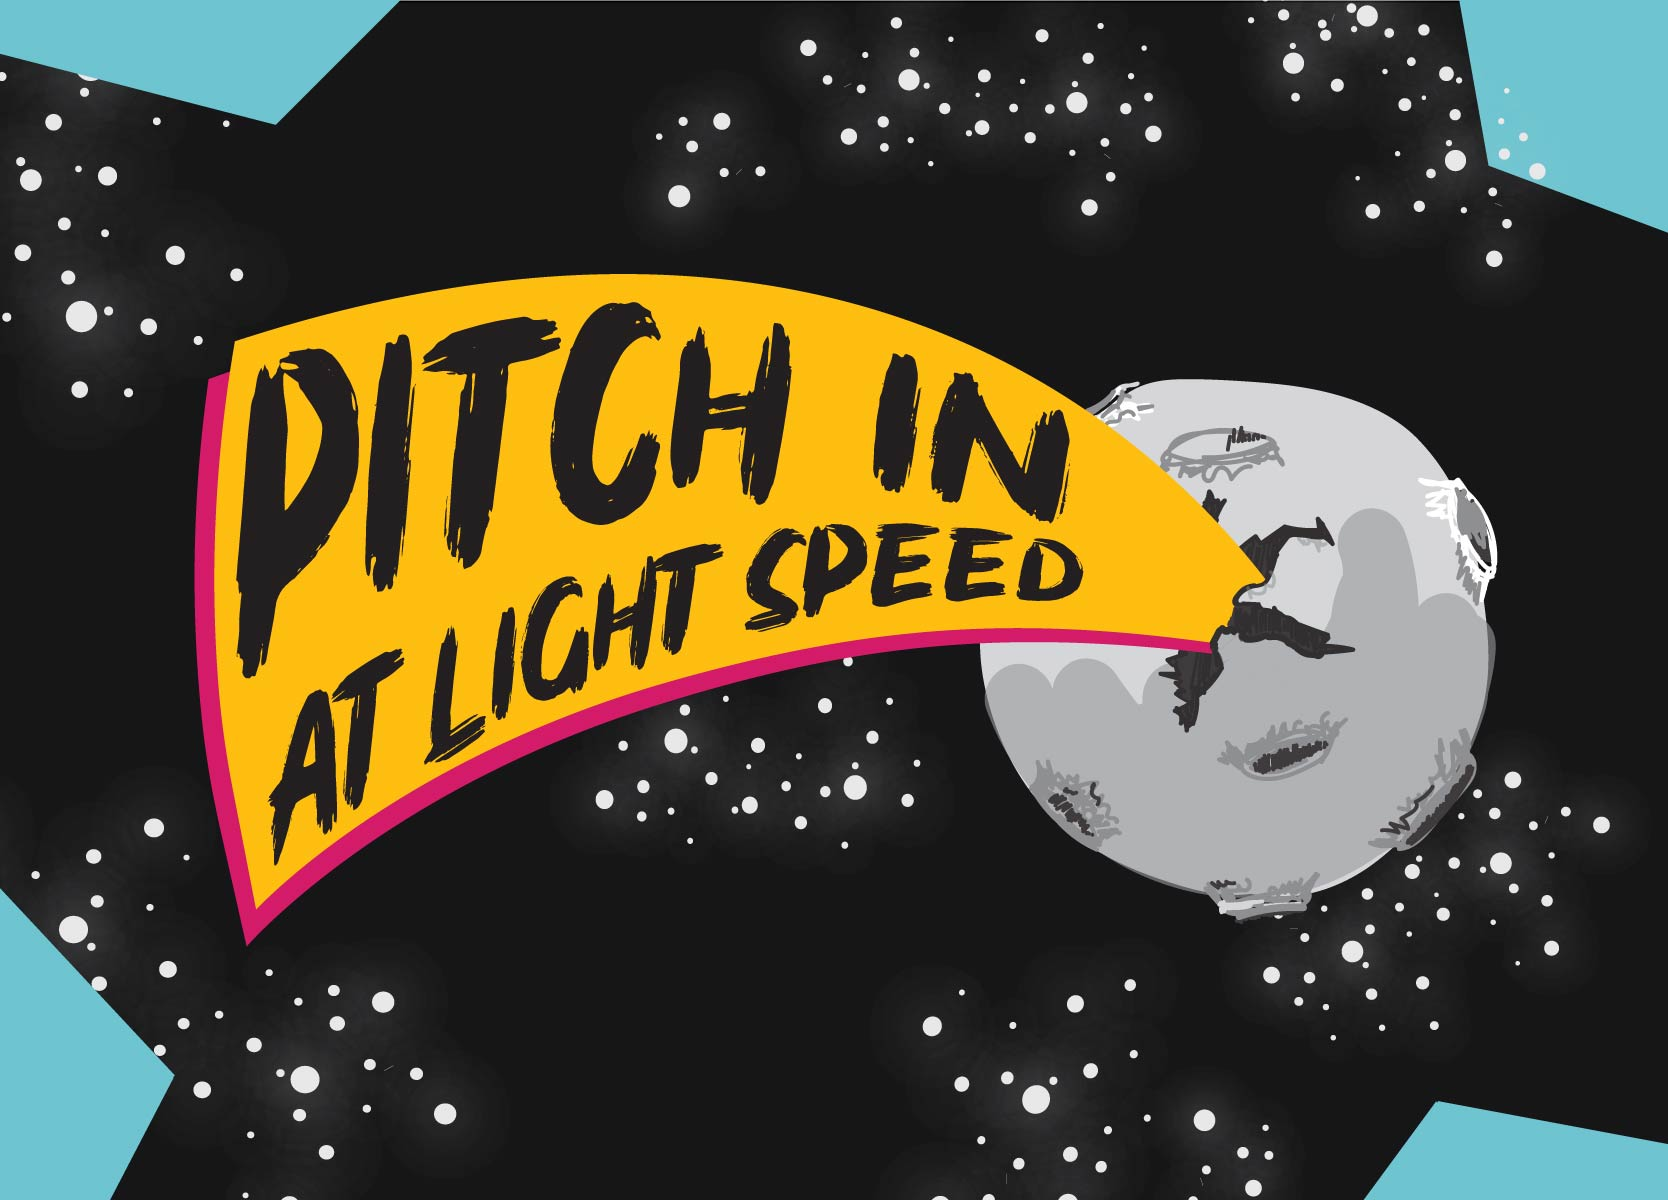 Details For Event 20140 – Pitch In at Light Speed Competition